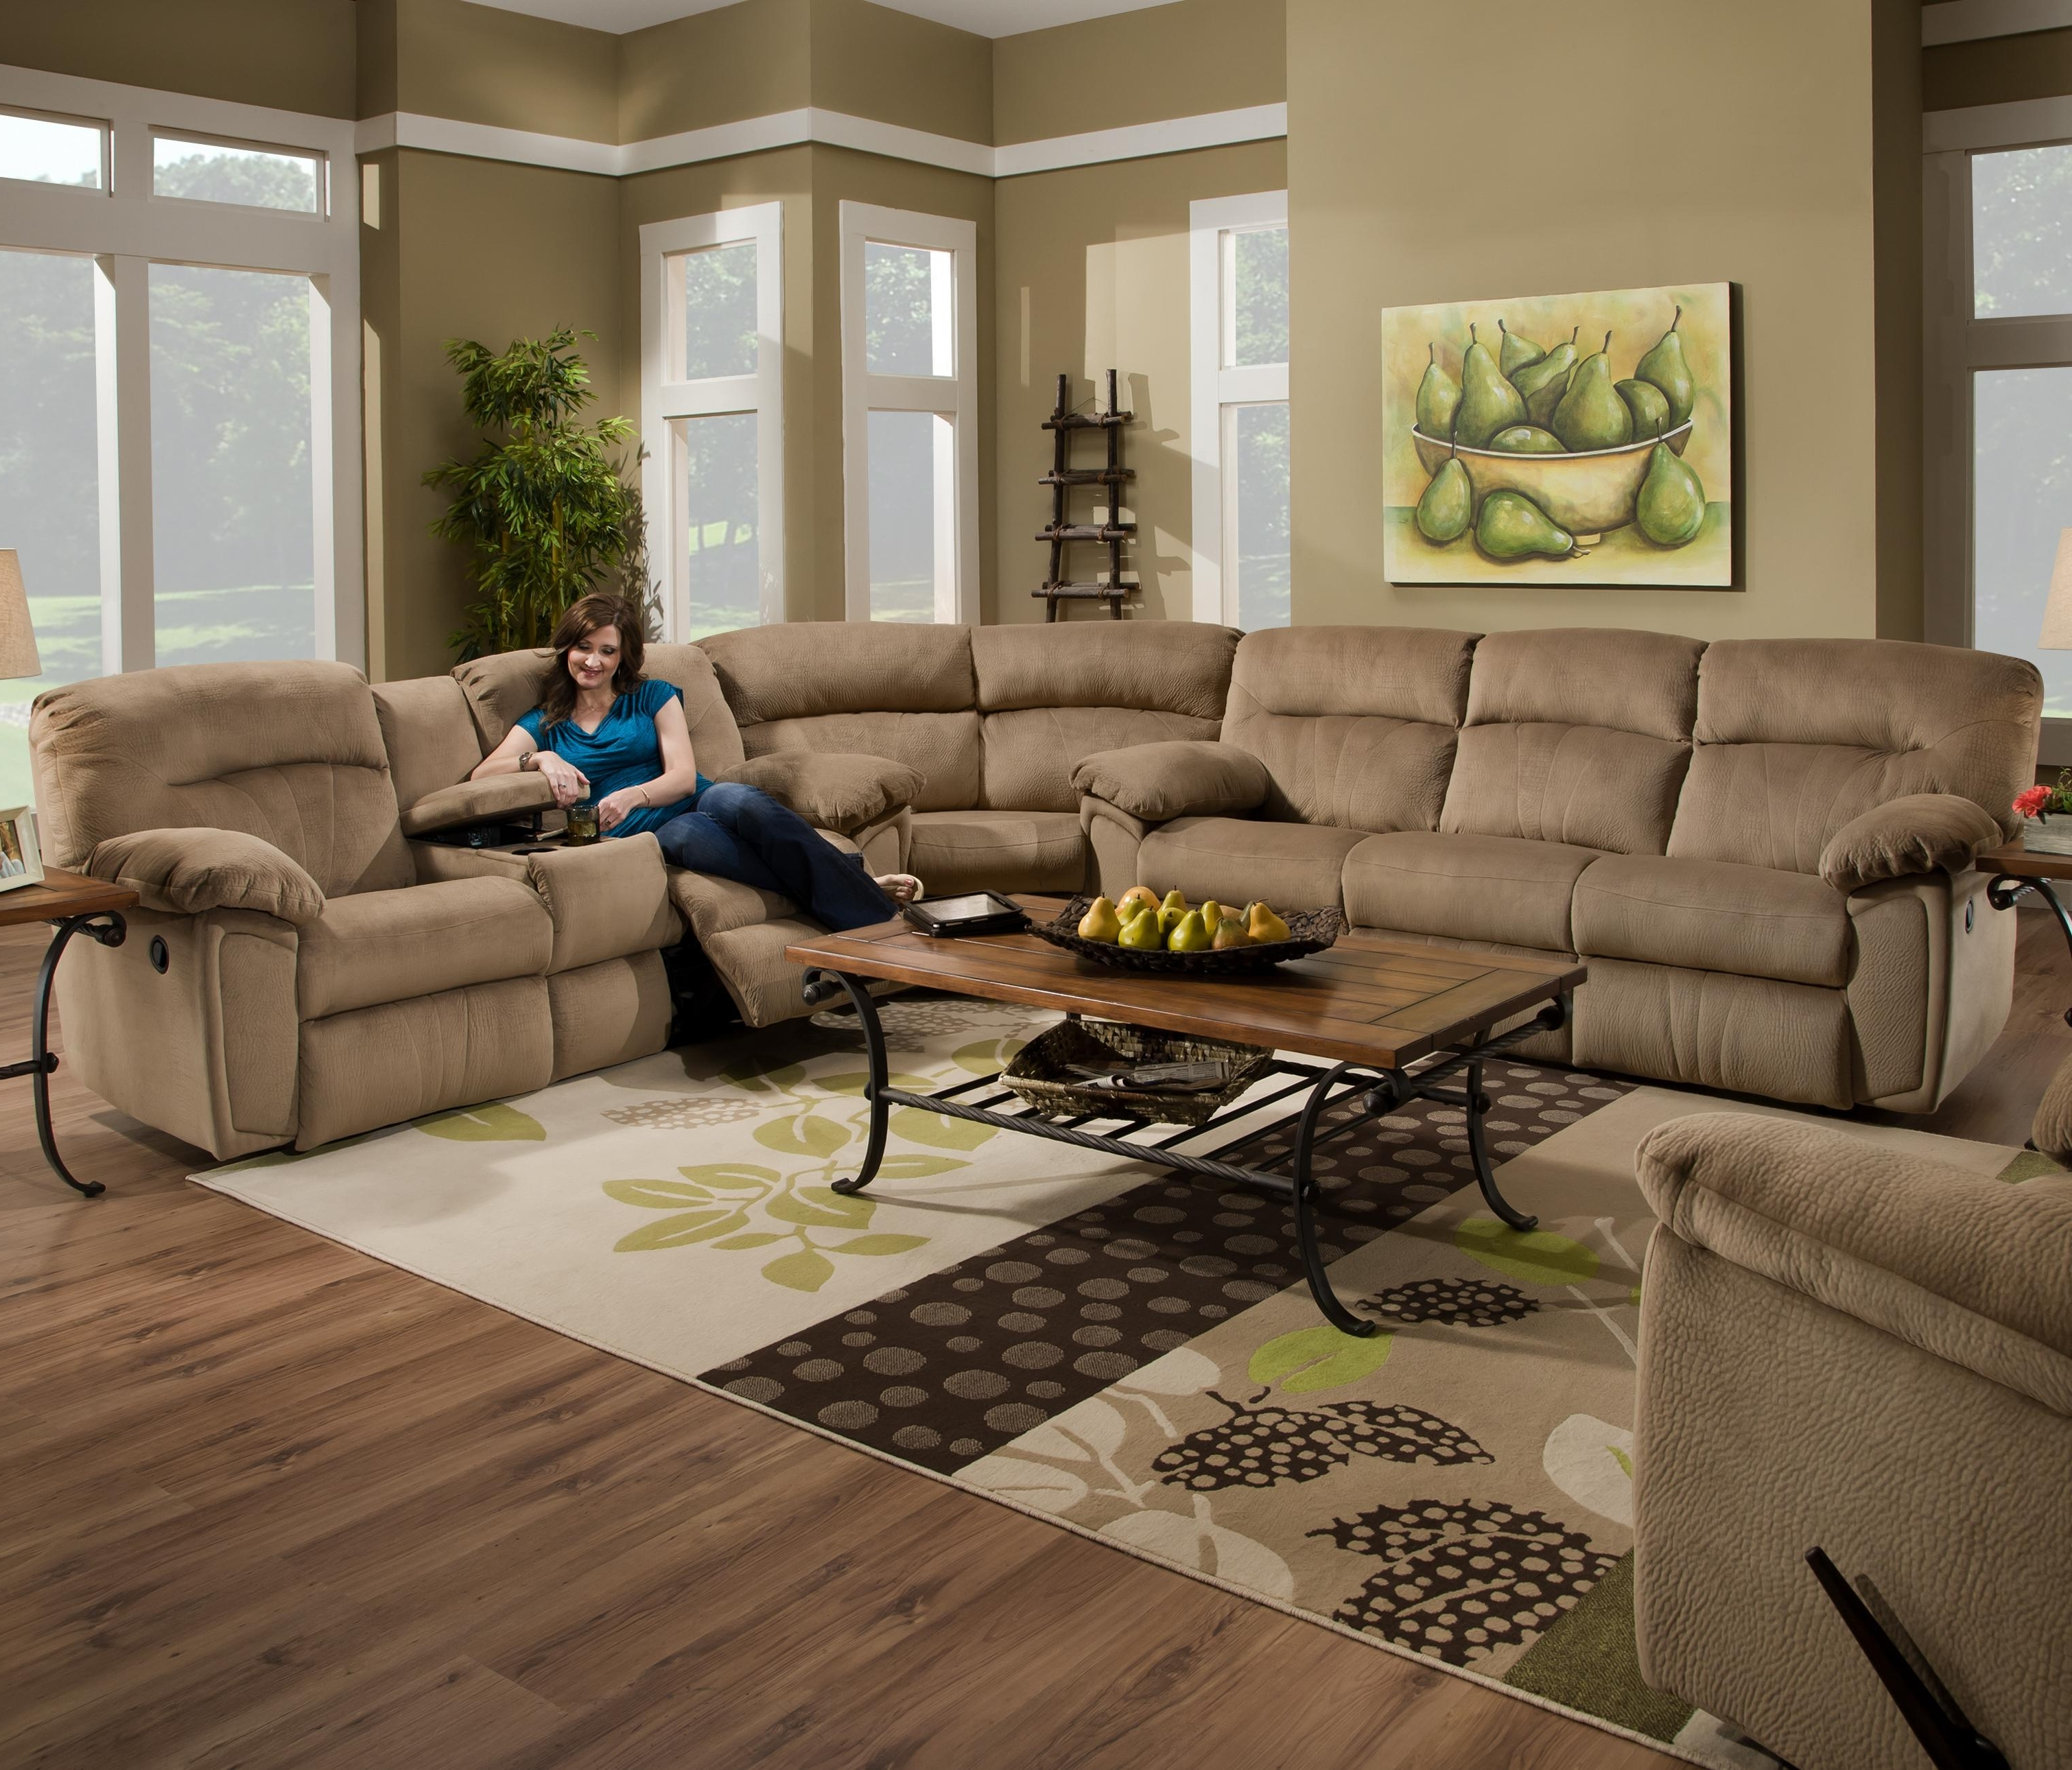 Couch With Cup Holders In Arms Reclining Sectional Sofas For Small Intended For Recent Sectional Sofas With Cup Holders (View 15 of 15)